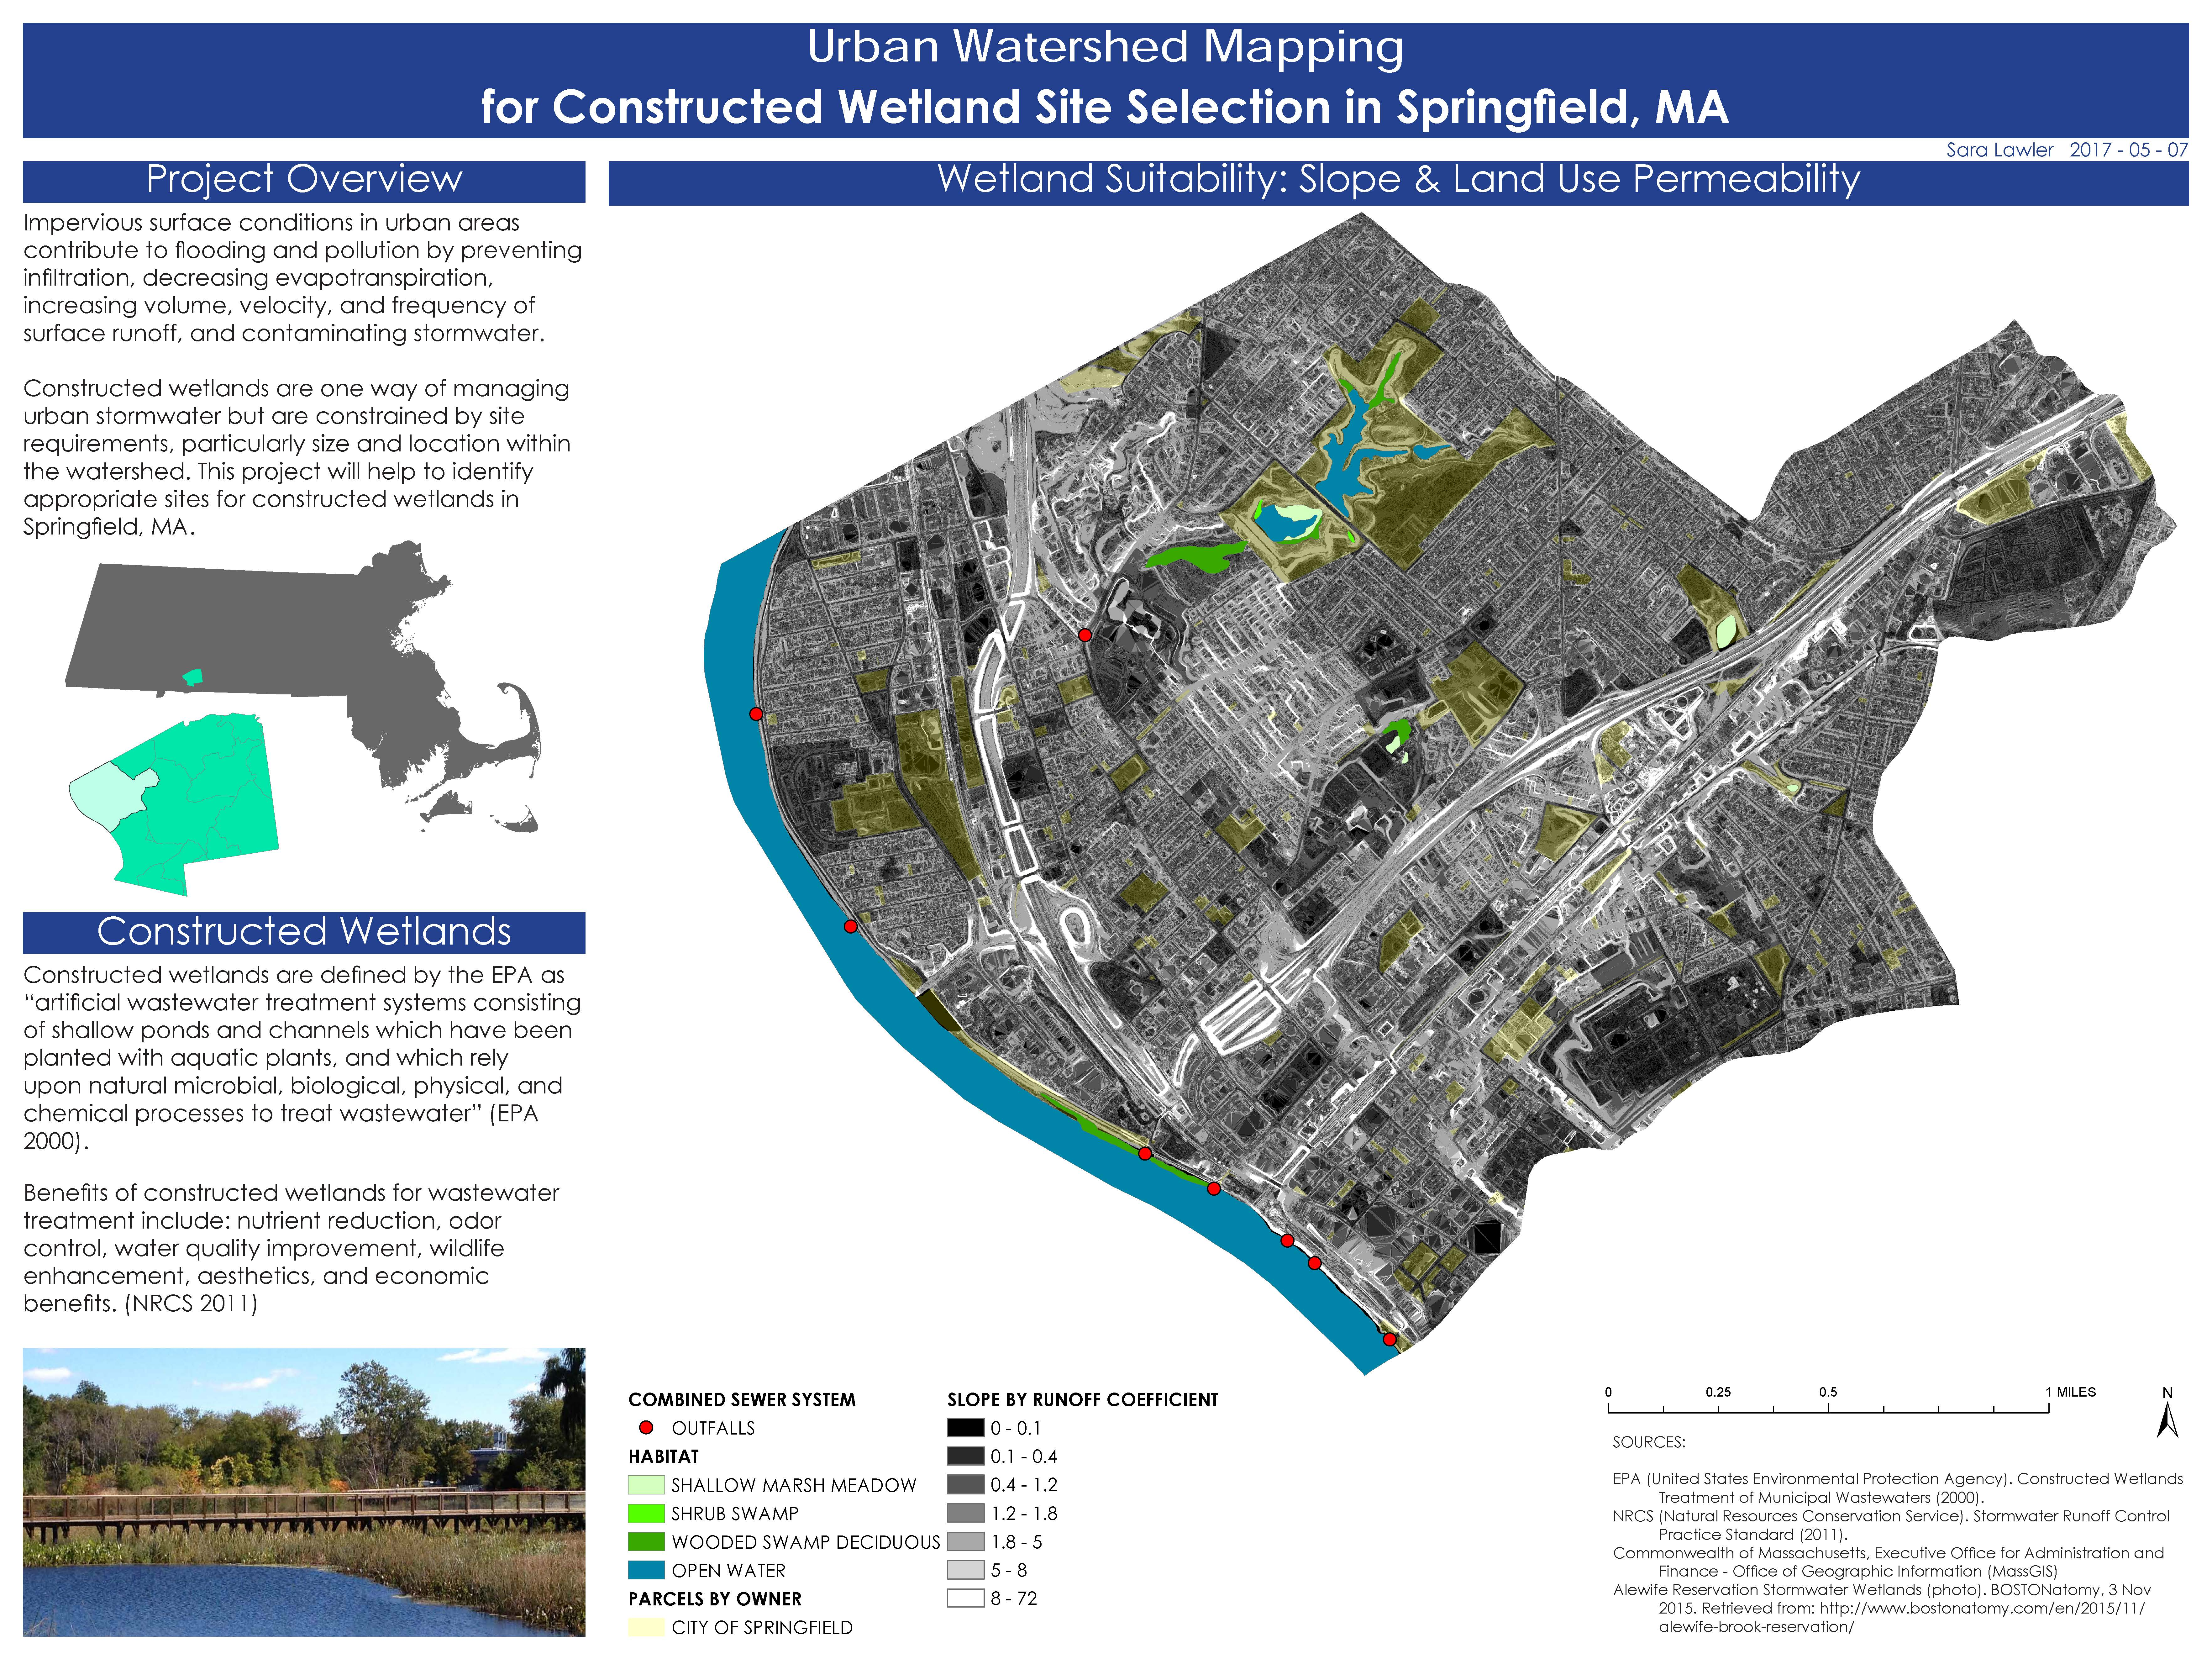 Urban Watershed Mapping for Constructed Wetland Site Selection in Springfield, MA - Sara Lawler